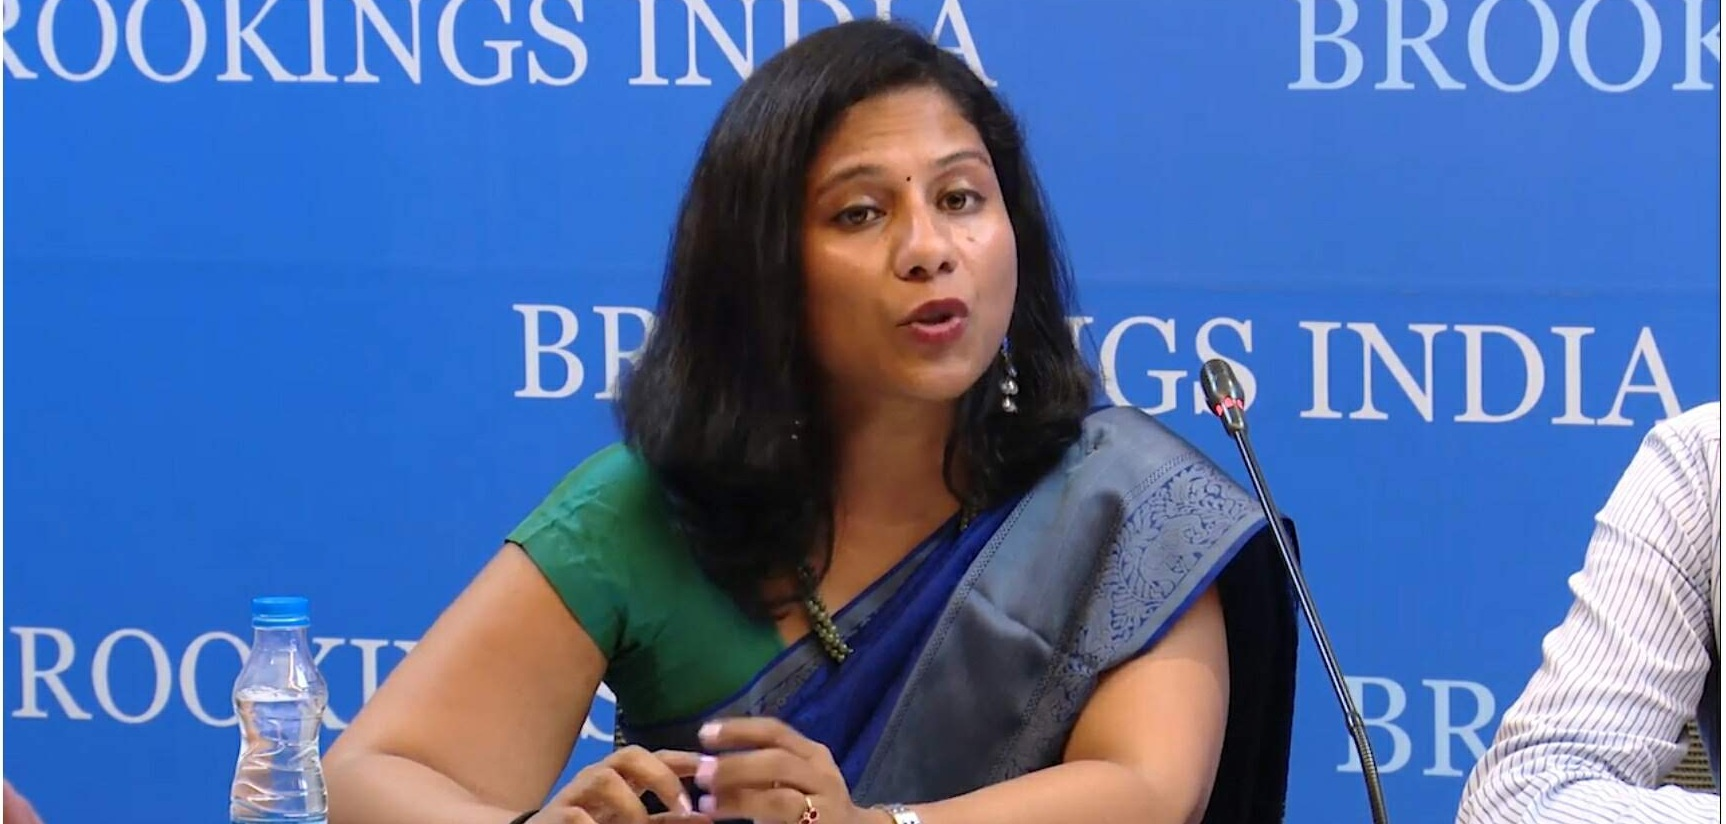 Recent Events - The first year results of the Development Impact Bond were released in July at the Brookings India Event. Watch the Panel discussion on the DIB where our CEO Sowmya Velayudham talks about the assessment process.